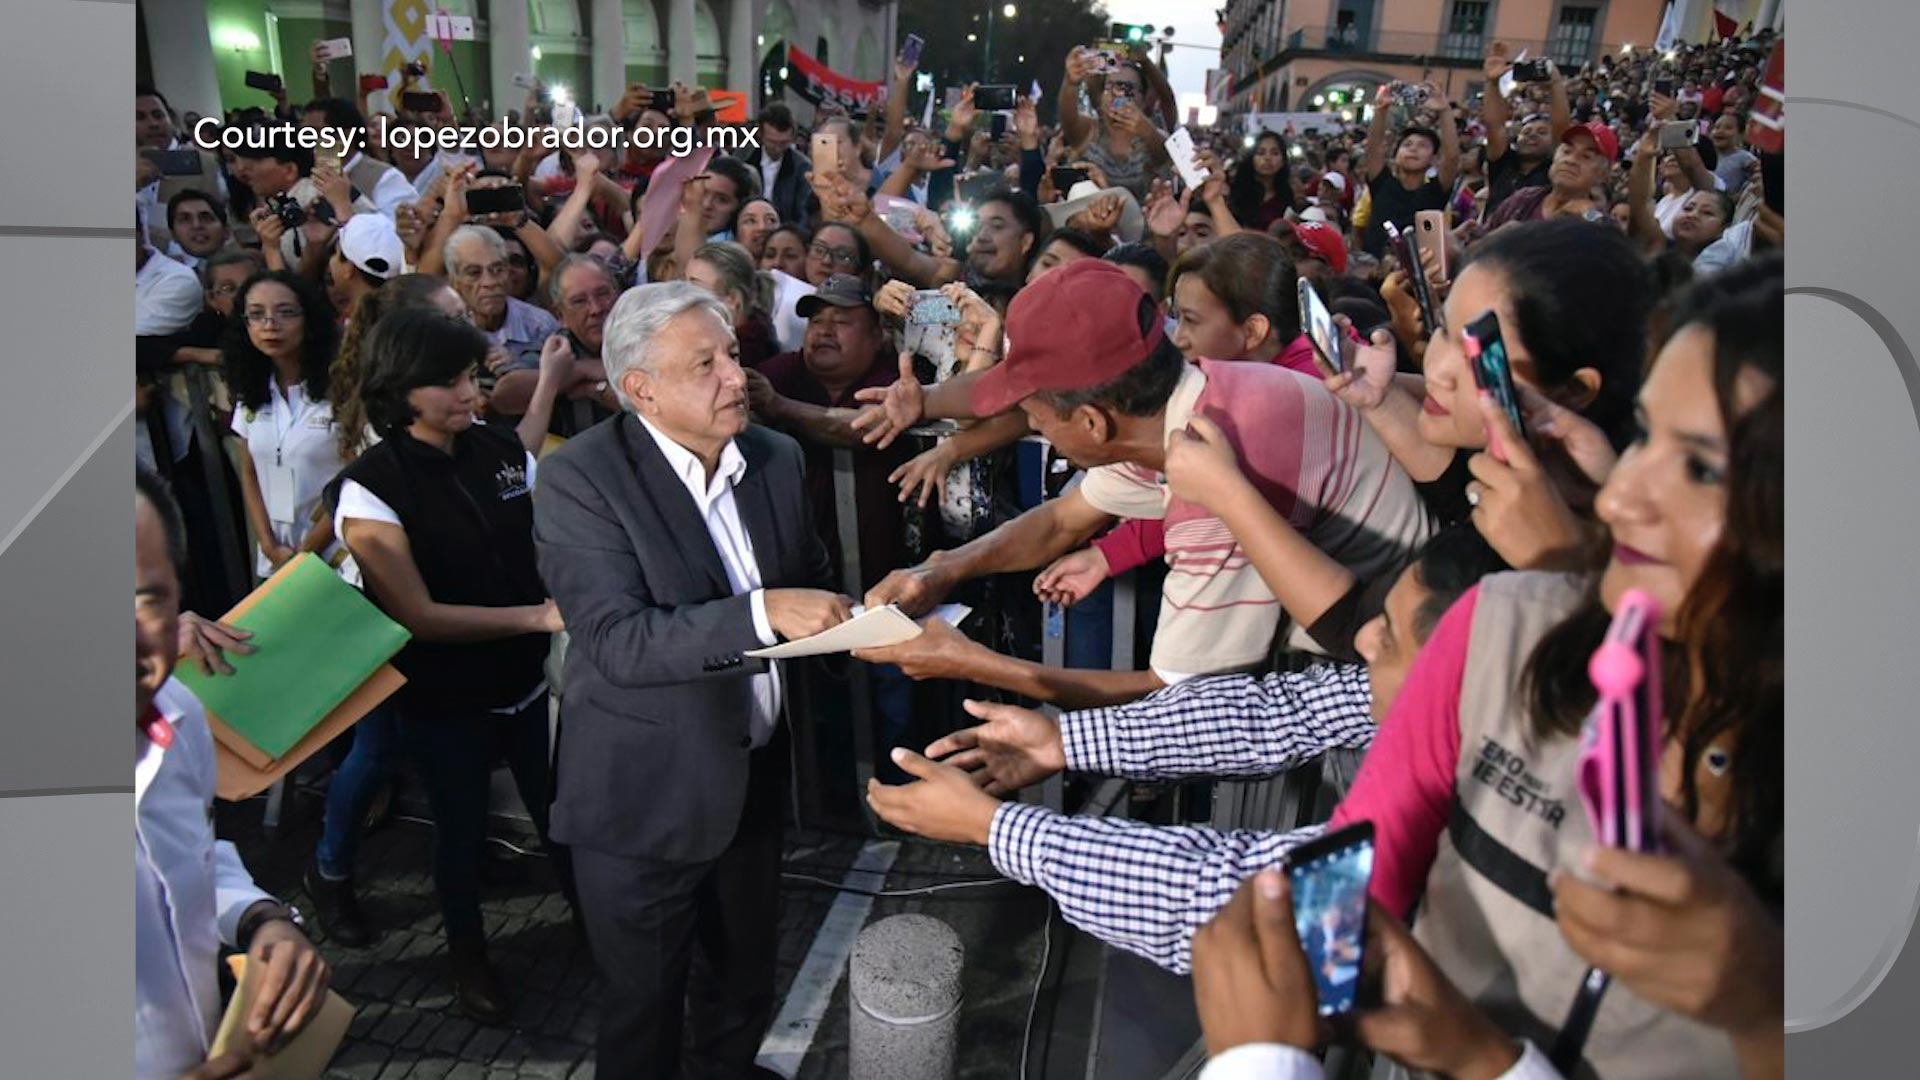 Mexican President Andres Manuel Lopez Obrador greets supporters.